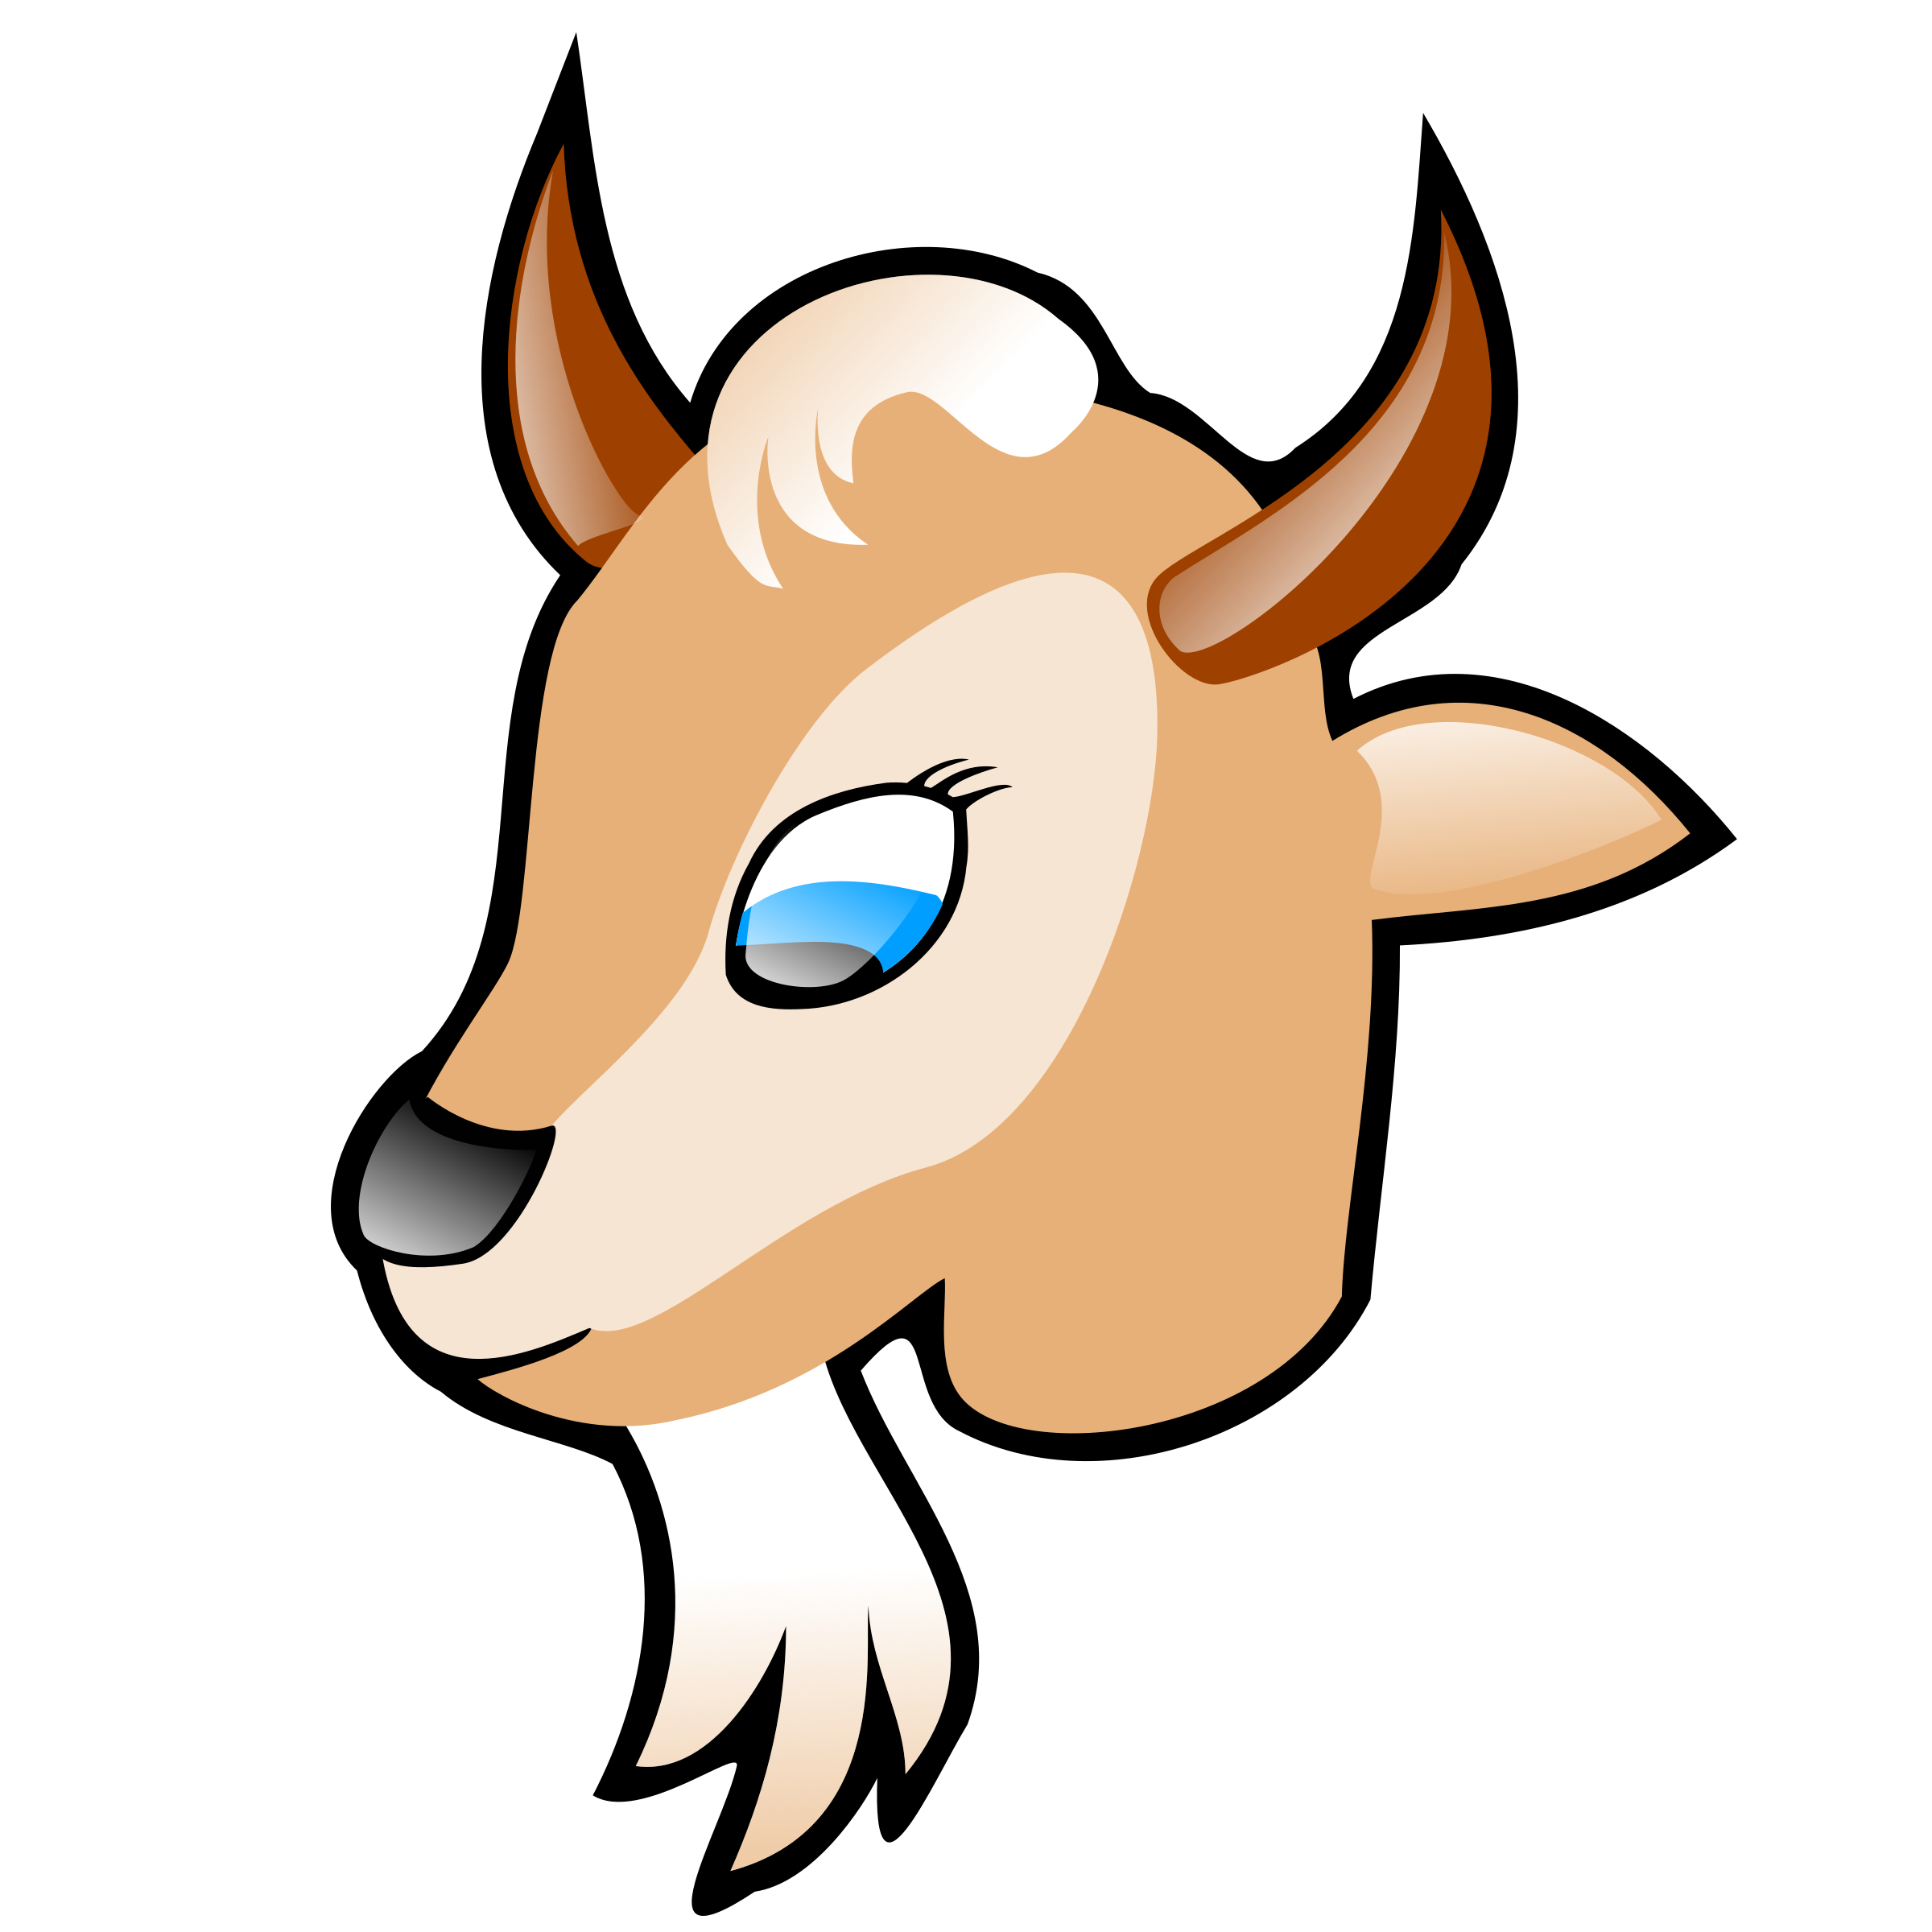 Head icons png free. Horn clipart mother goat